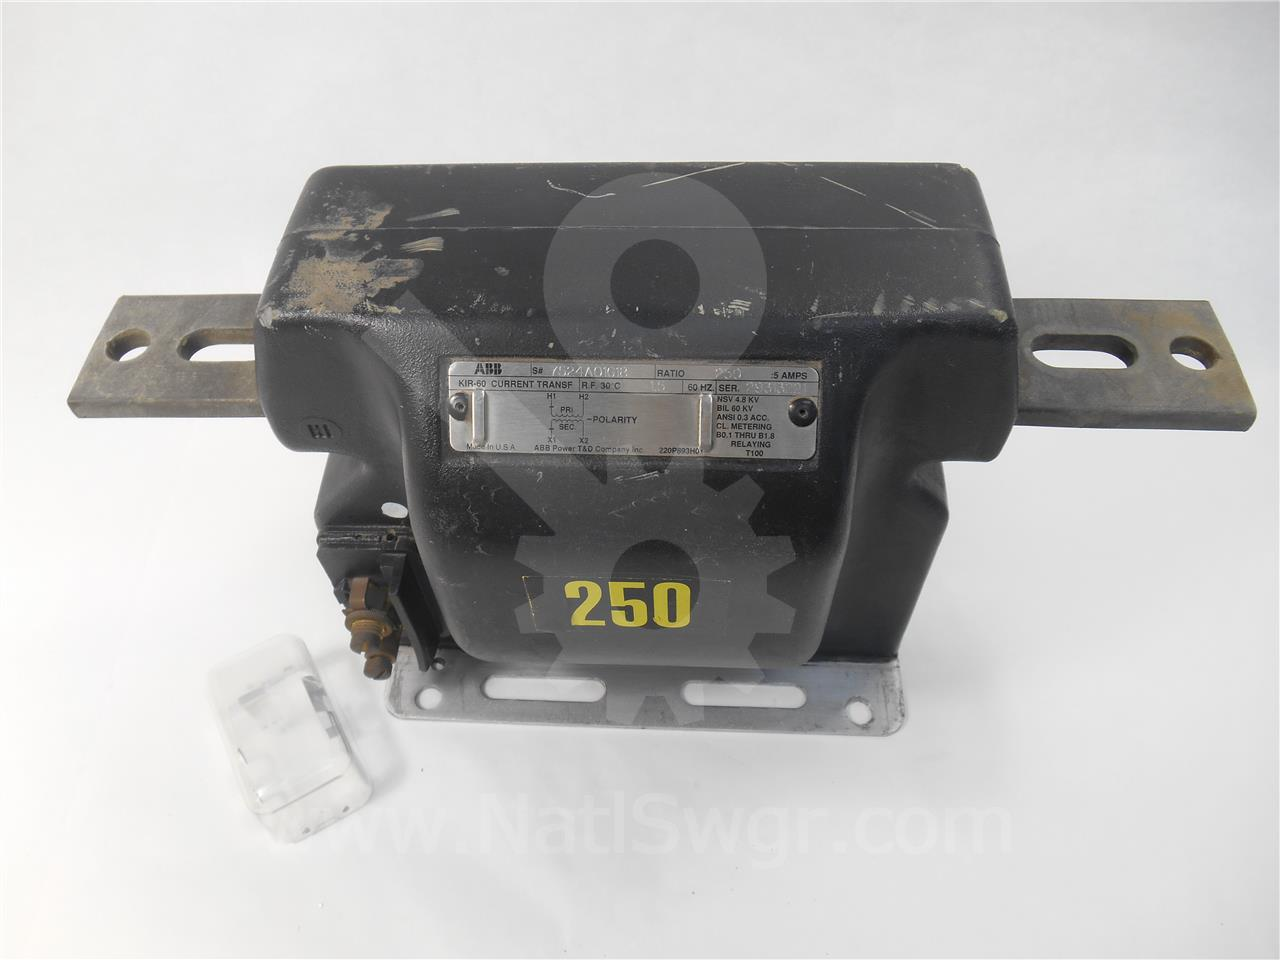 7524A01G18 ABB CURRENT TRANSFORMER 250:5 KIR60